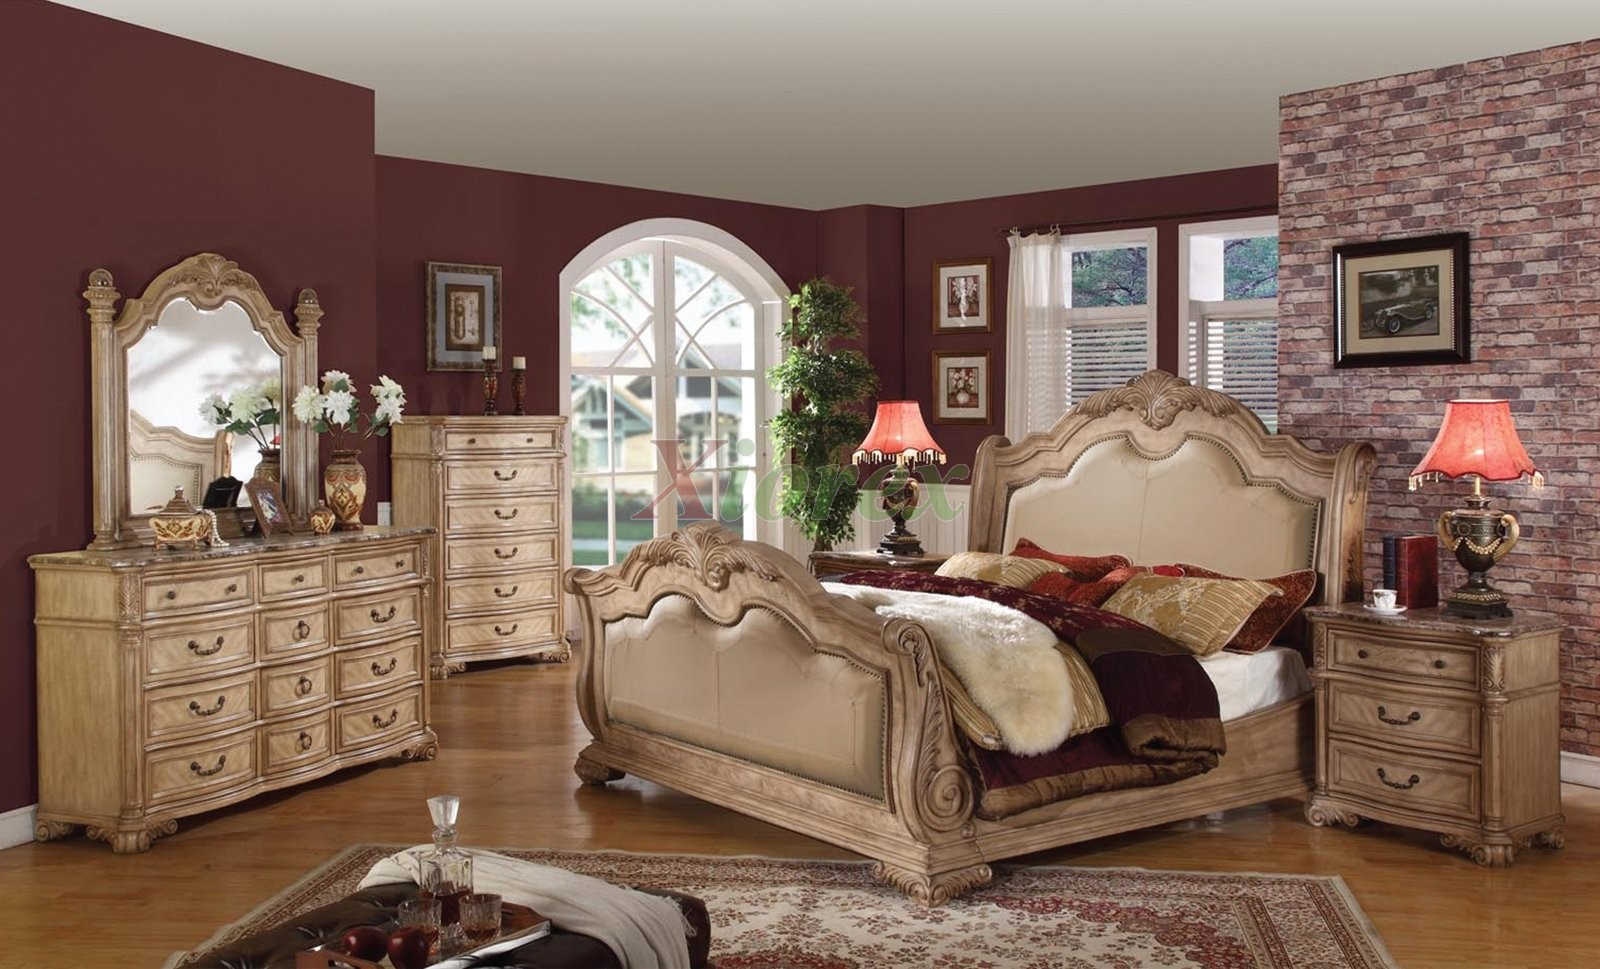 Cheap Online Furniture Stores Free Shipping Small House Interior